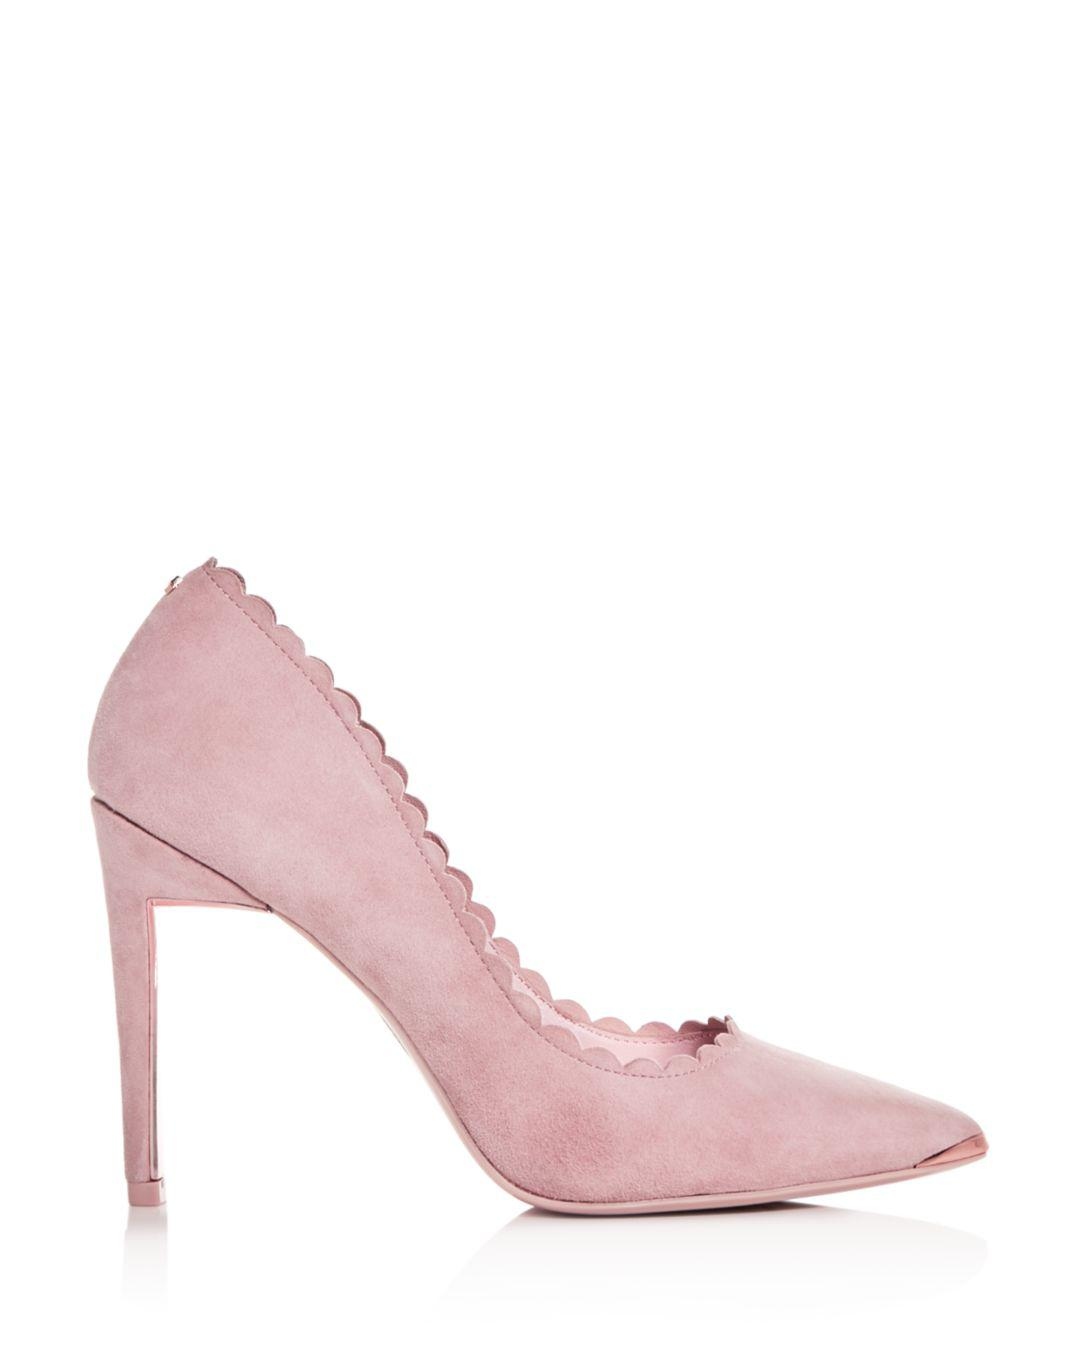 ae00cd70e Lyst - Ted Baker Women s Sloana Scalloped Pointed-toe Pumps in Pink - Save  40%